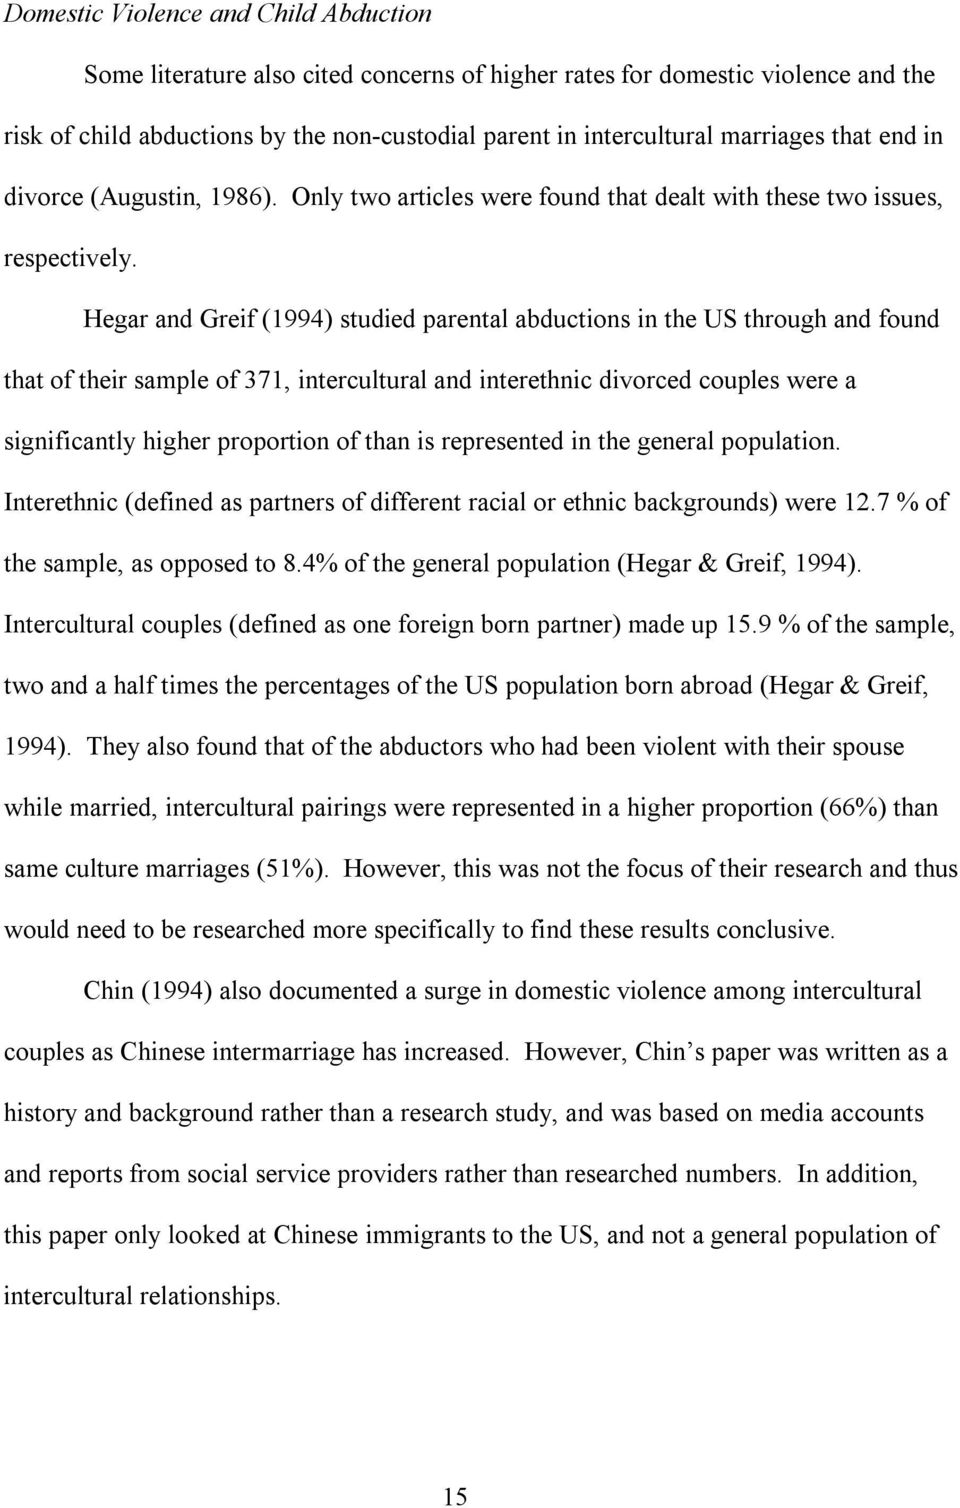 Hegar and Greif (1994) studied parental abductions in the US through and found that of their sample of 371, intercultural and interethnic divorced couples were a significantly higher proportion of